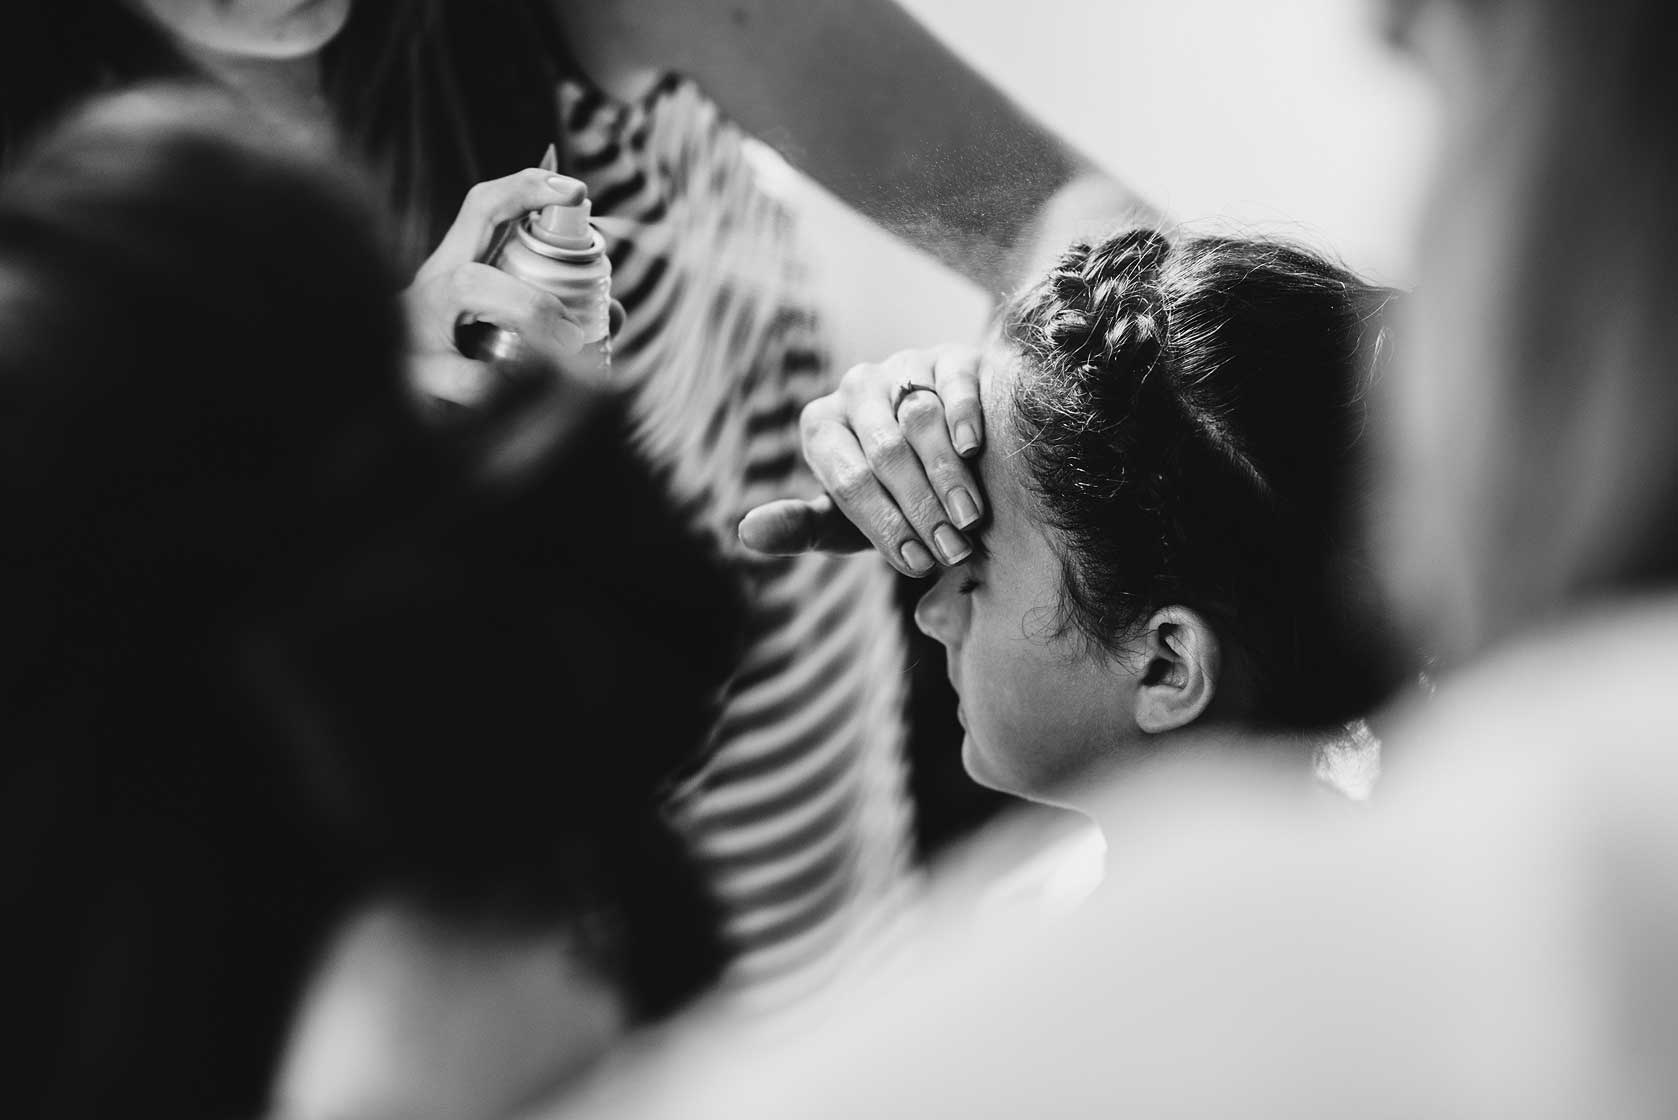 Reportage Wedding Photography in Gloucestershire